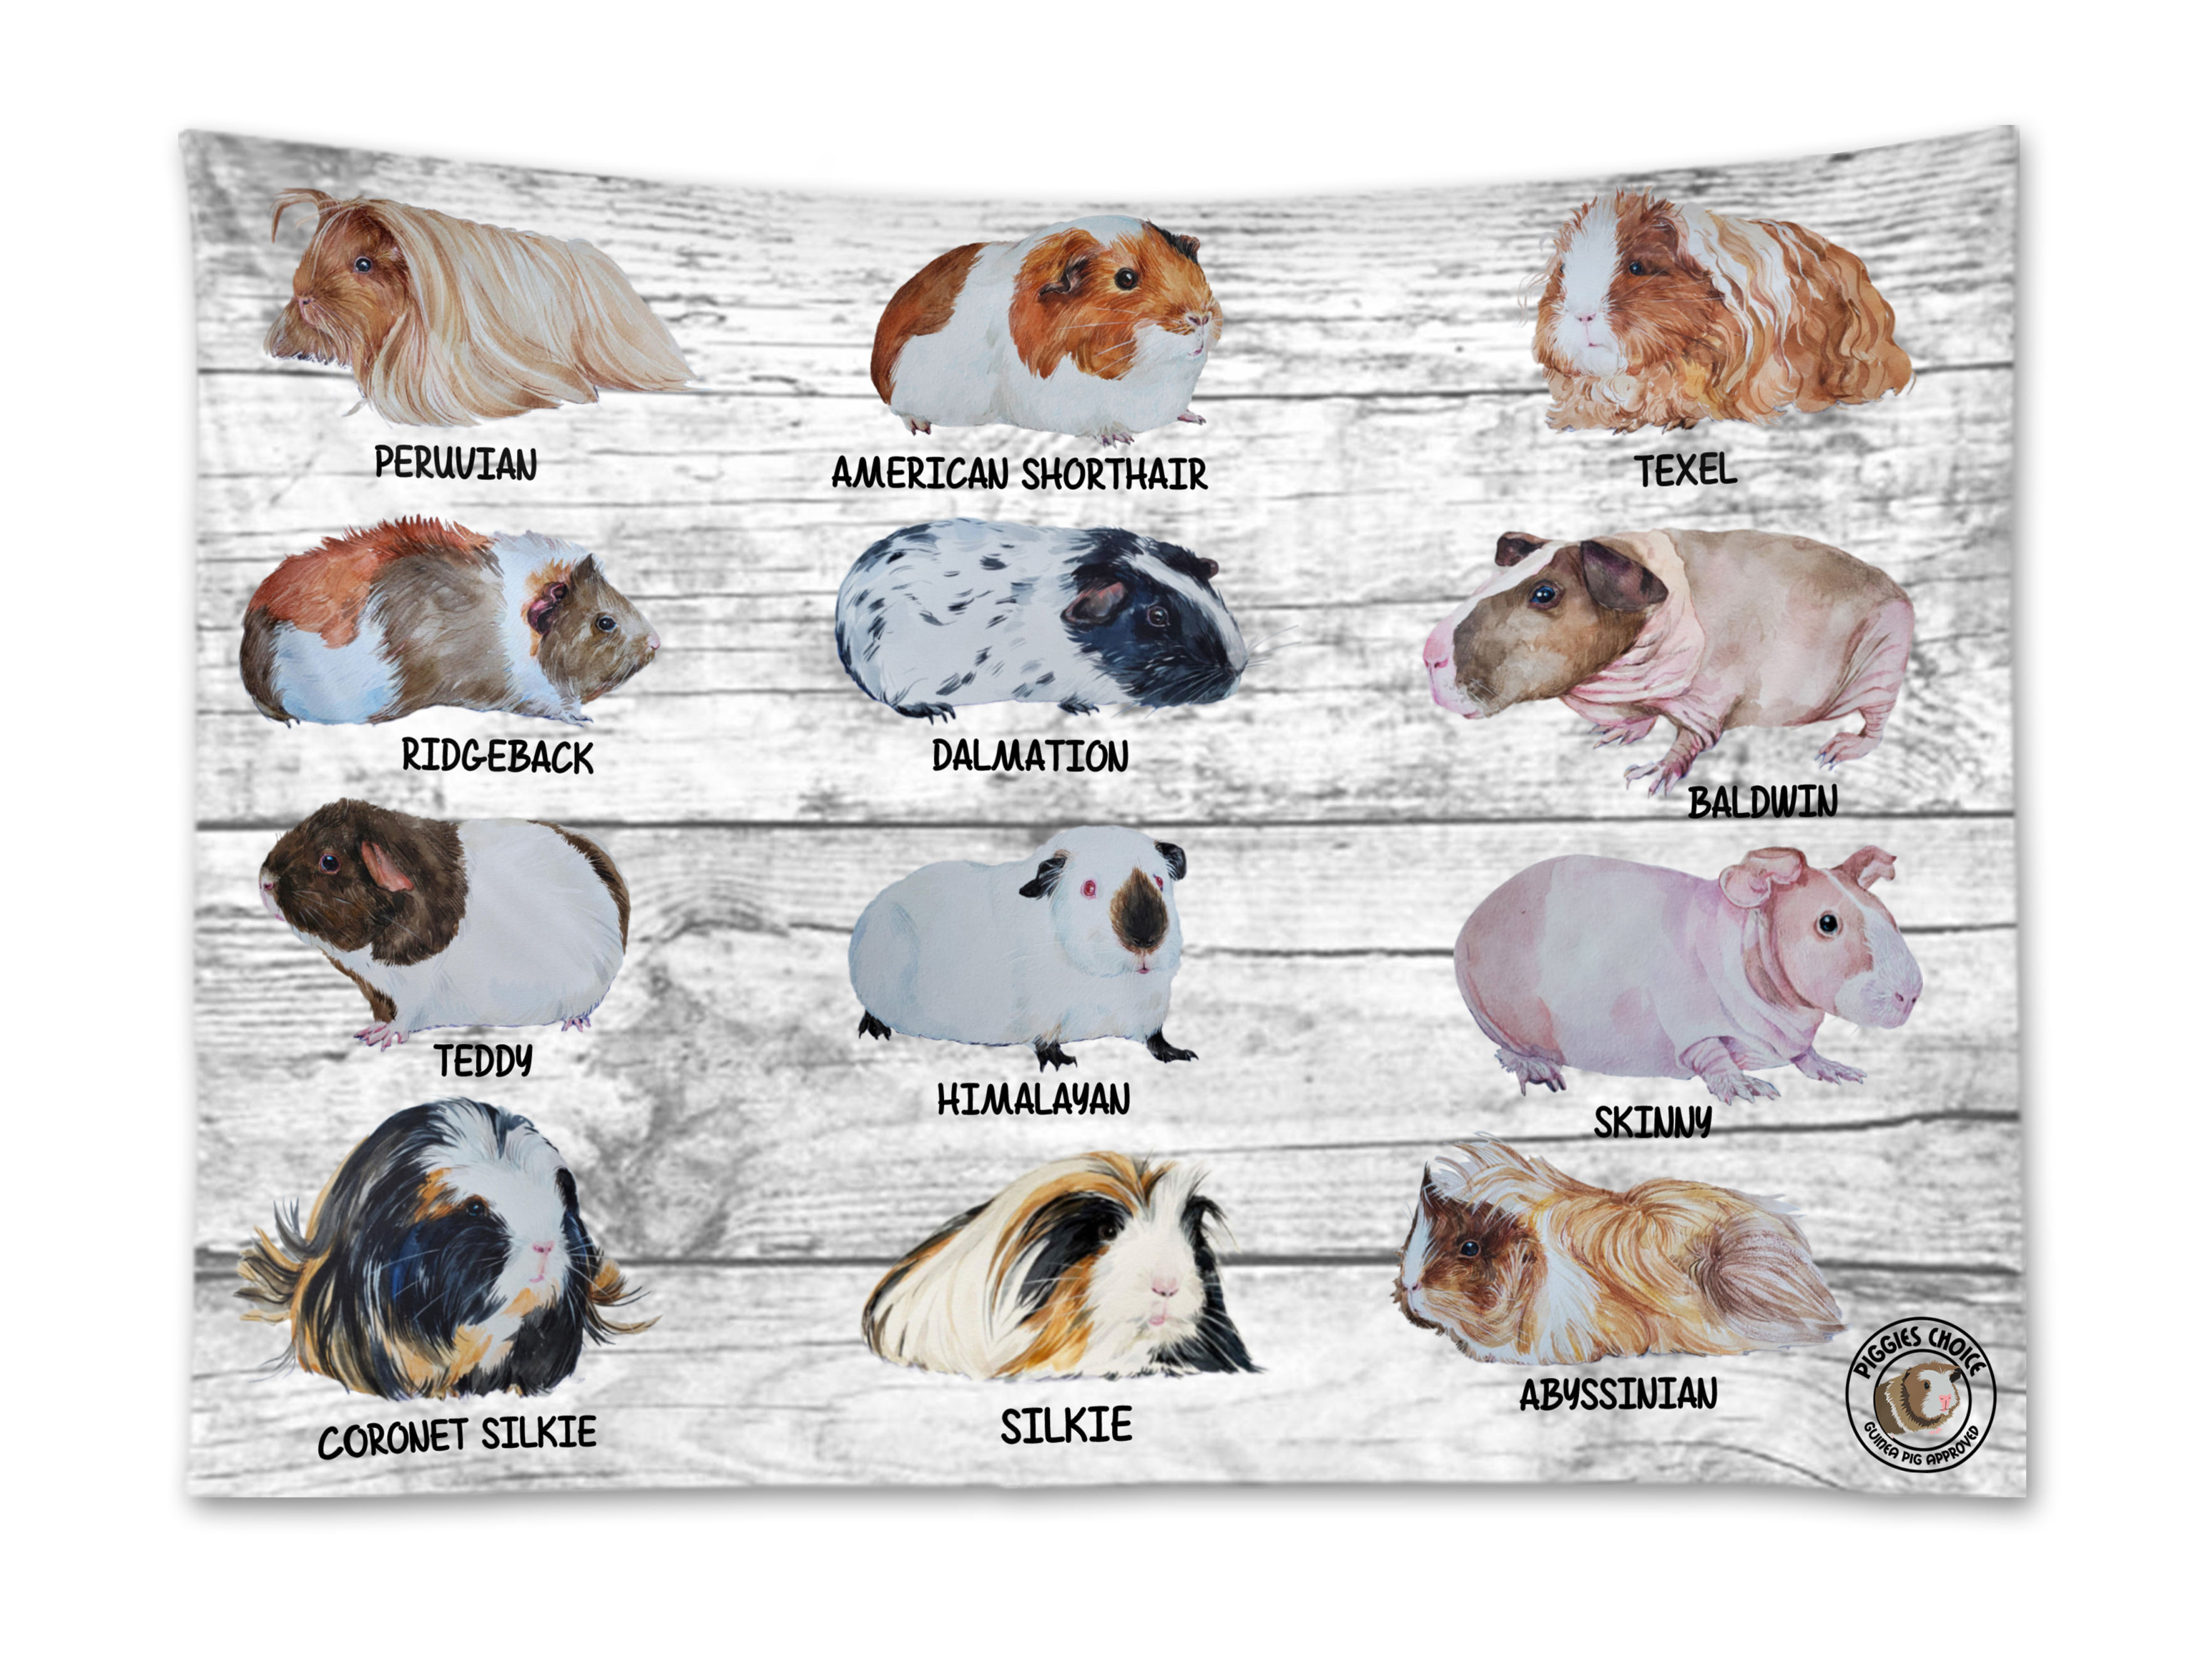 piggies choice guinea pig breed wall hanging tapestry depicting all breeds